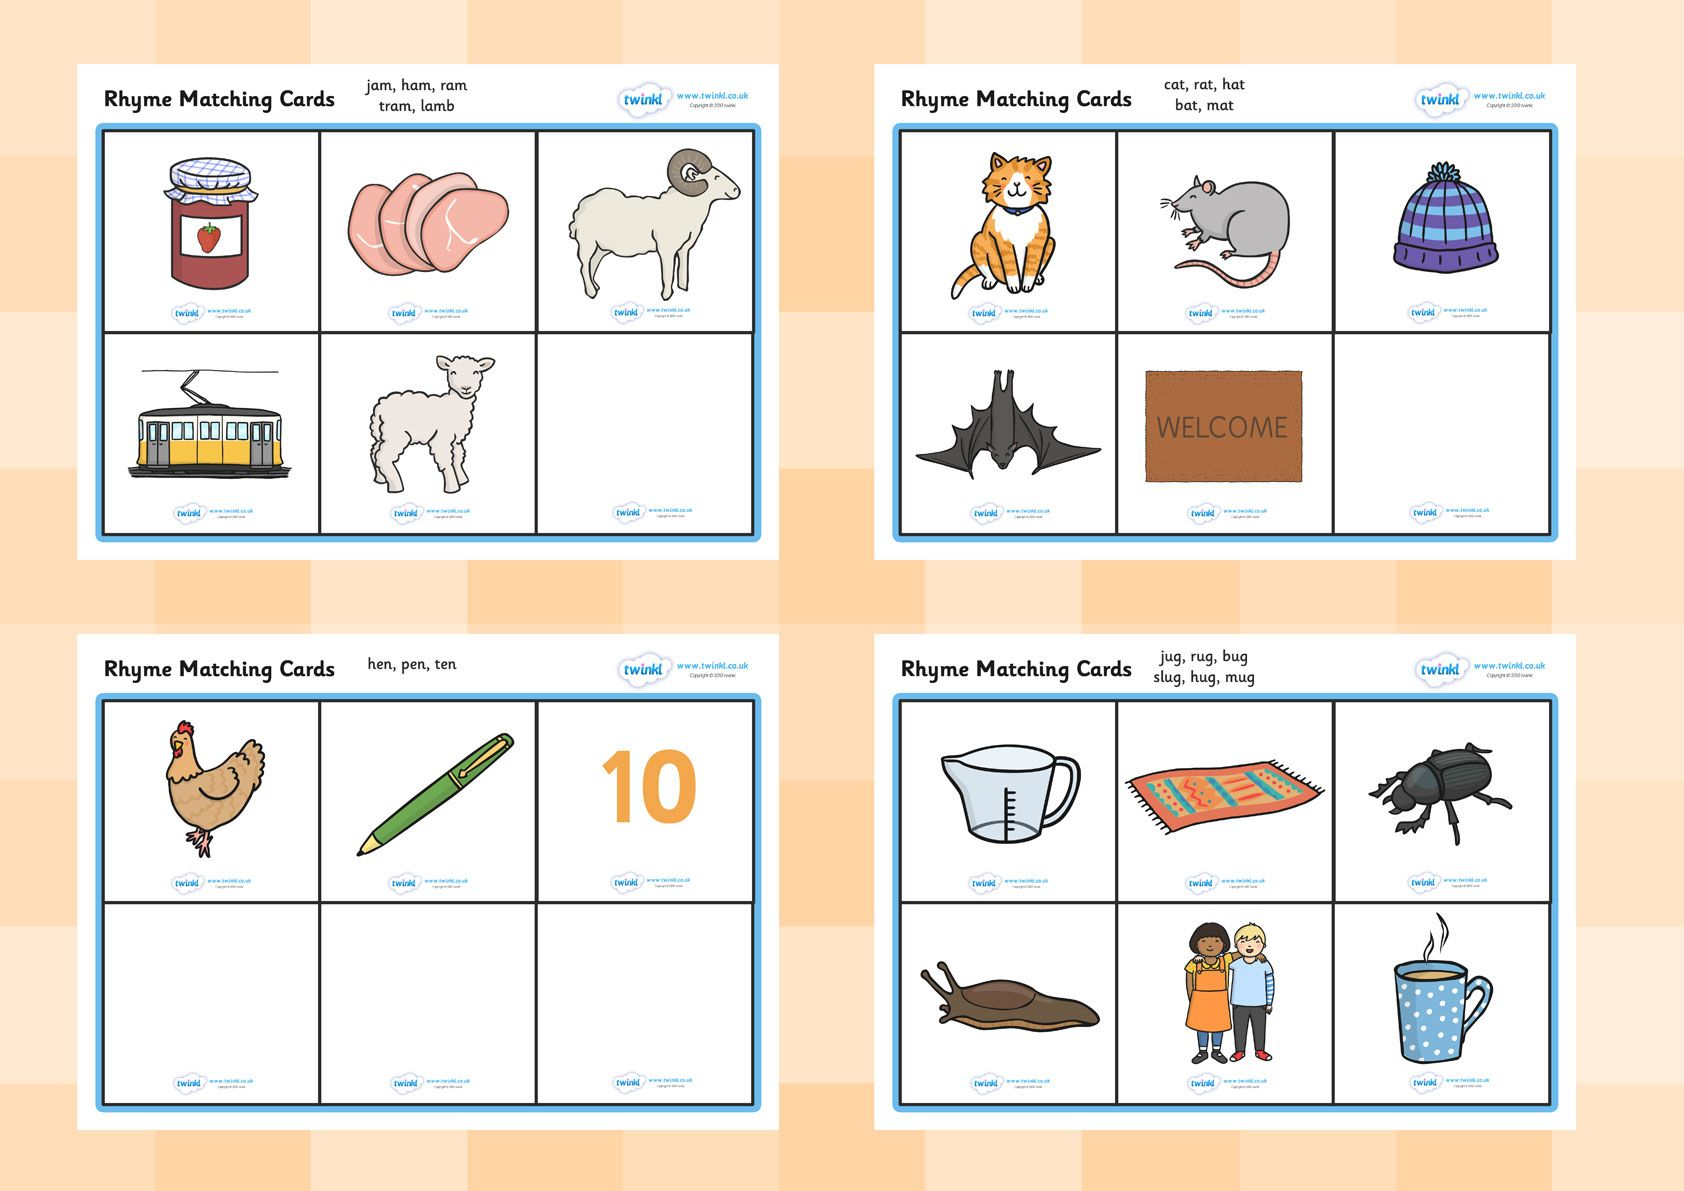 Twinkl Resources Gt Gt Rhyme Matching Cards Gt Gt Printable Resources For Primary Eyfs Ks1 And Sen